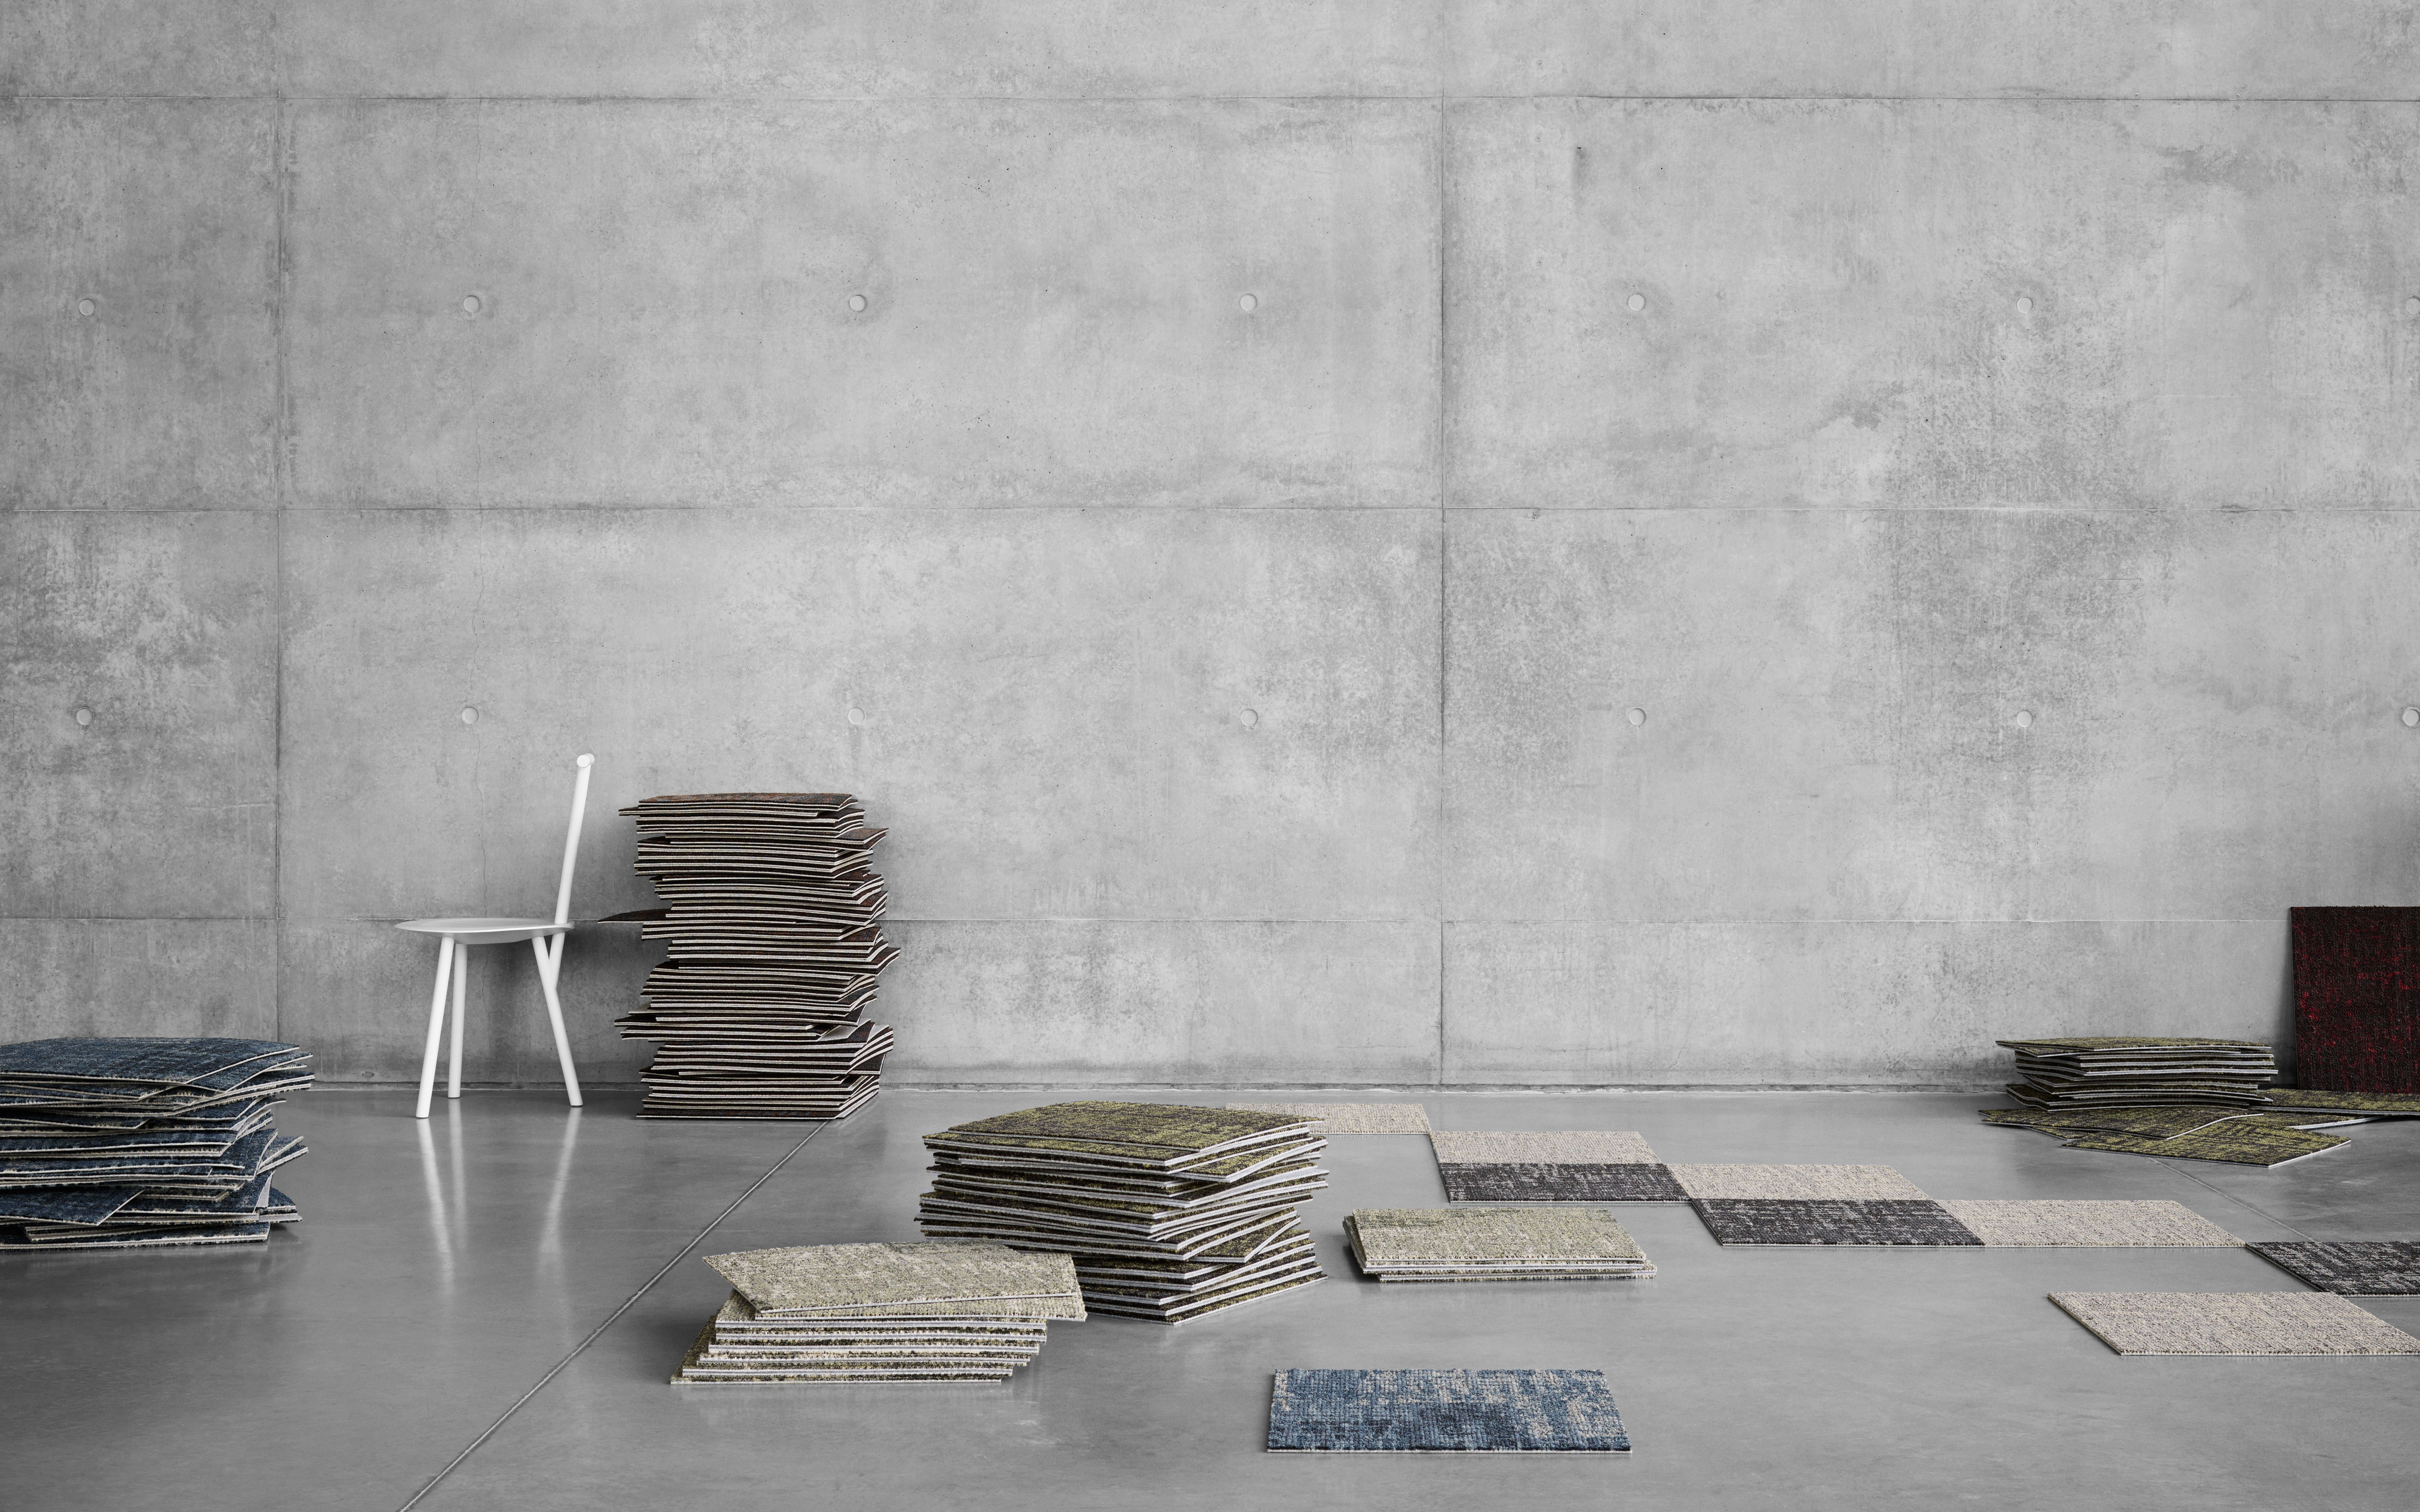 different coloured carpet tile samples in stacks showcase the variety of qualities you can choose from